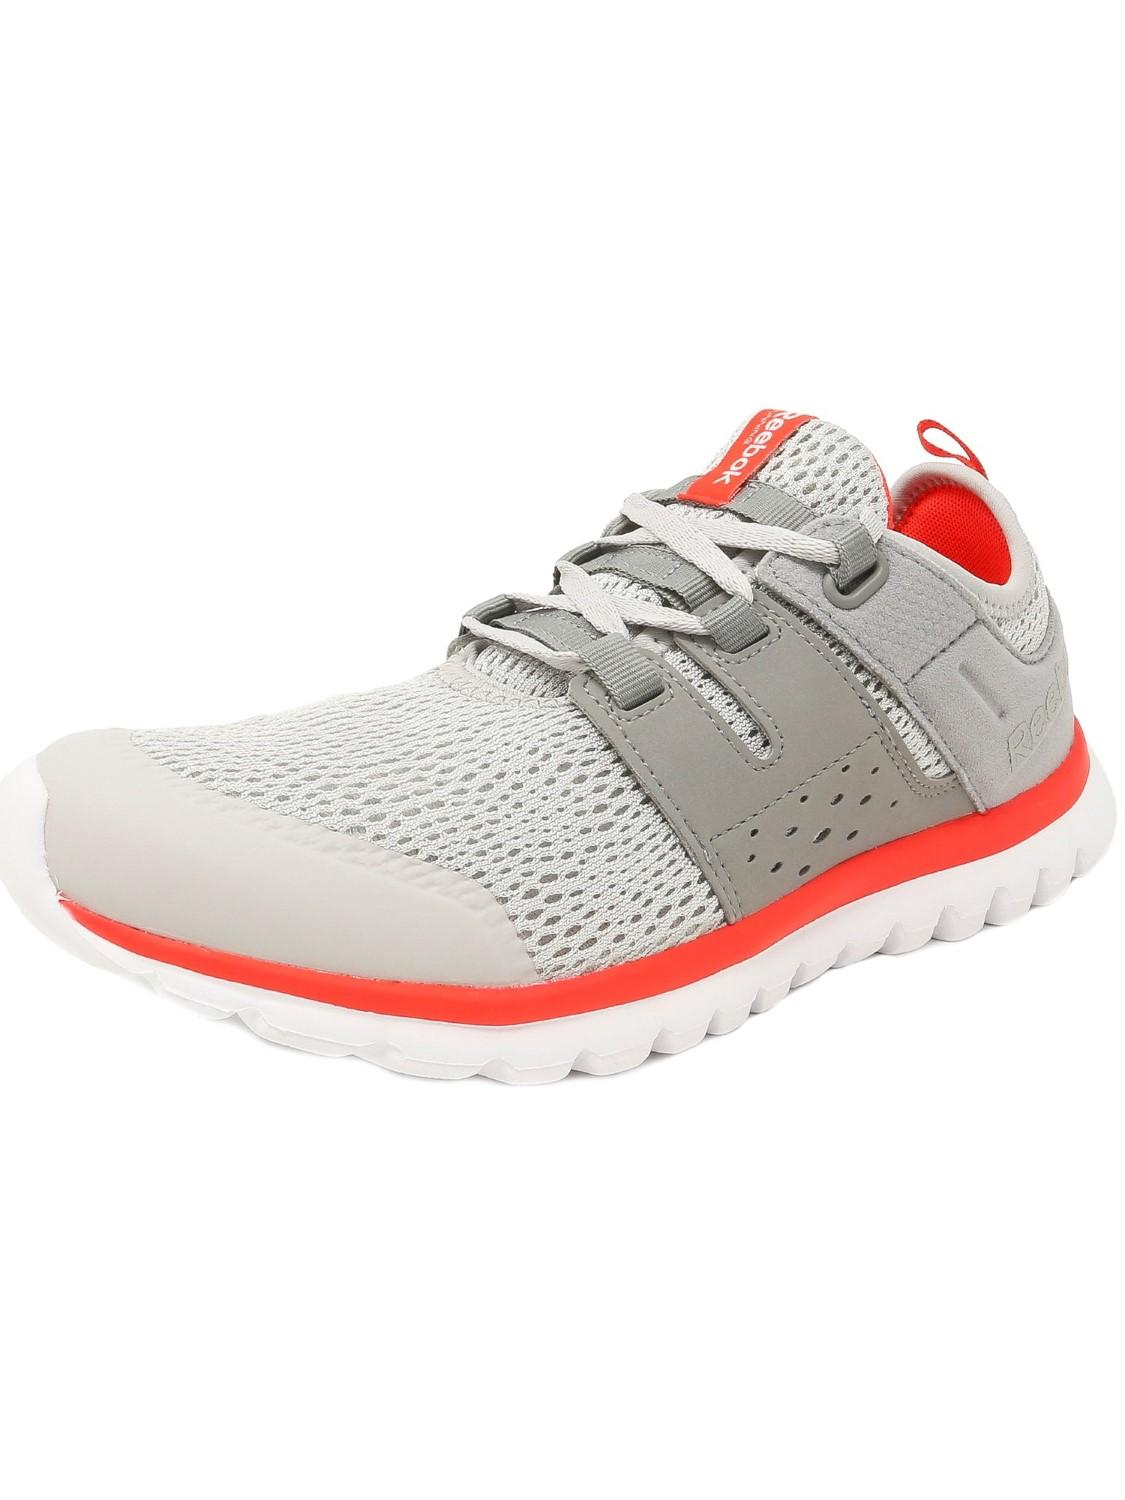 855bdd7b577ae Reebok - Gray Sublite Authentic 2.0 Steel   Gravel Cherry White Ankle-high  Fabric Running. View fullscreen